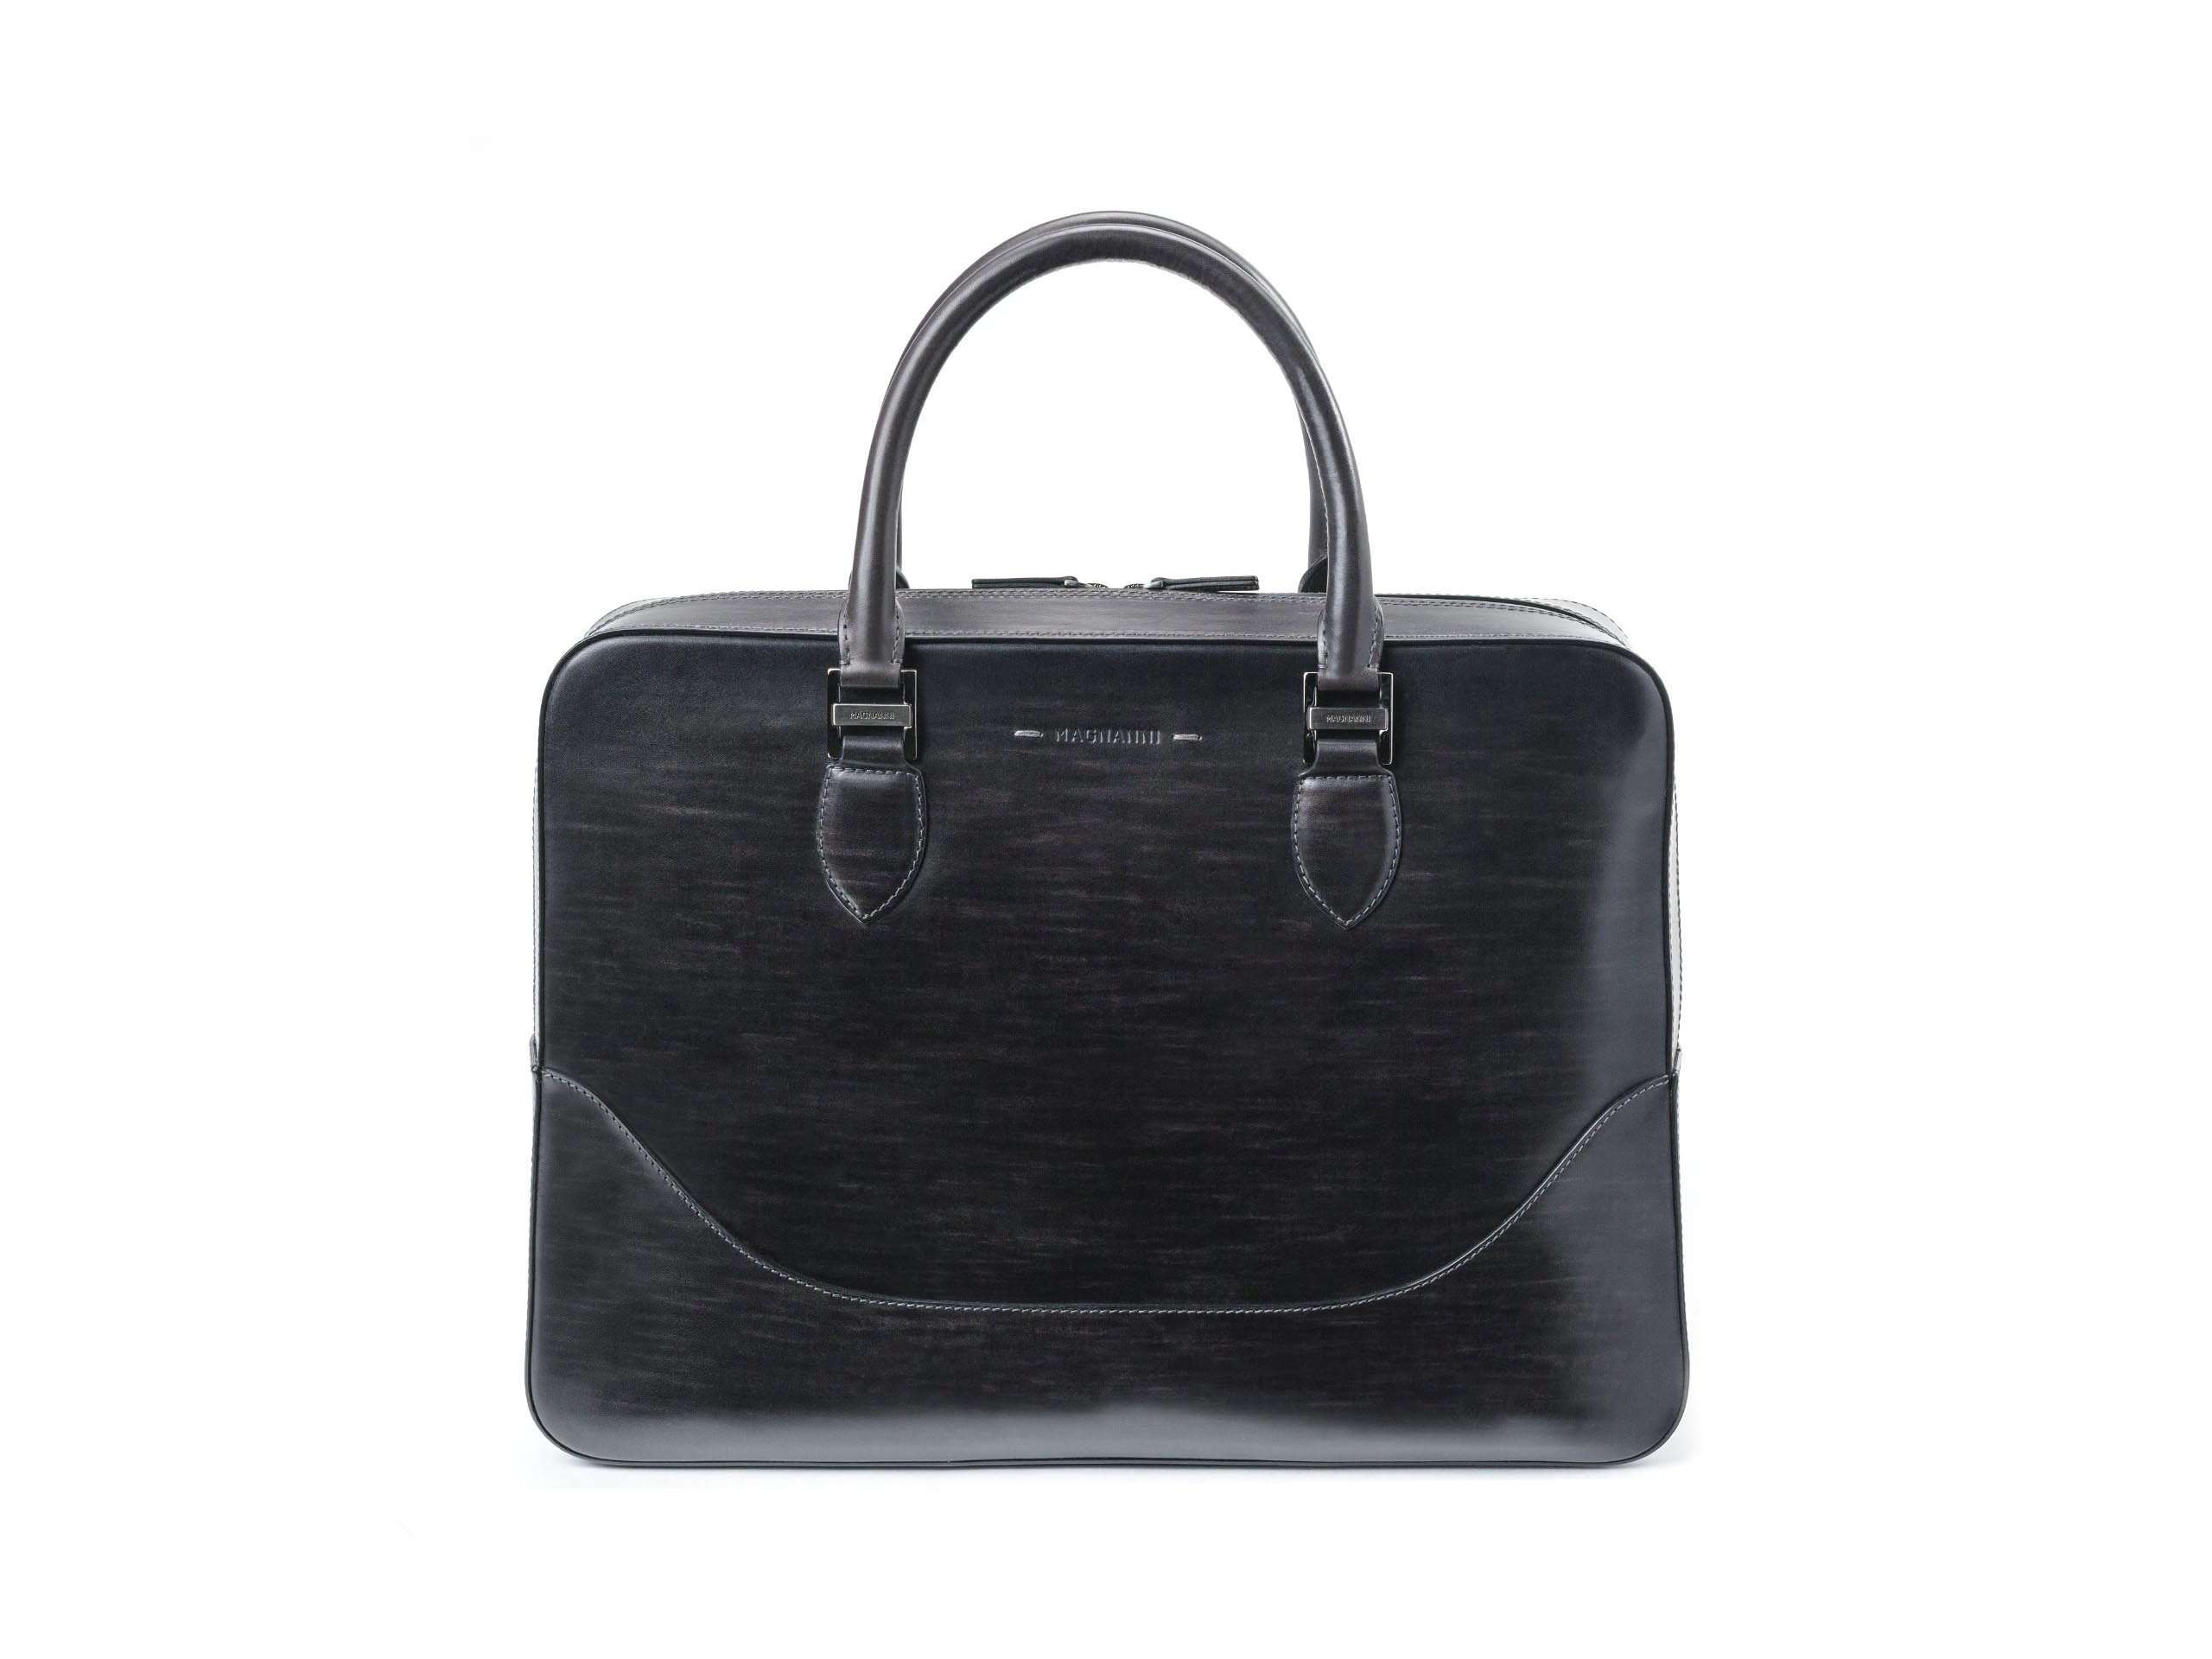 Side view of the Business Grey Bags